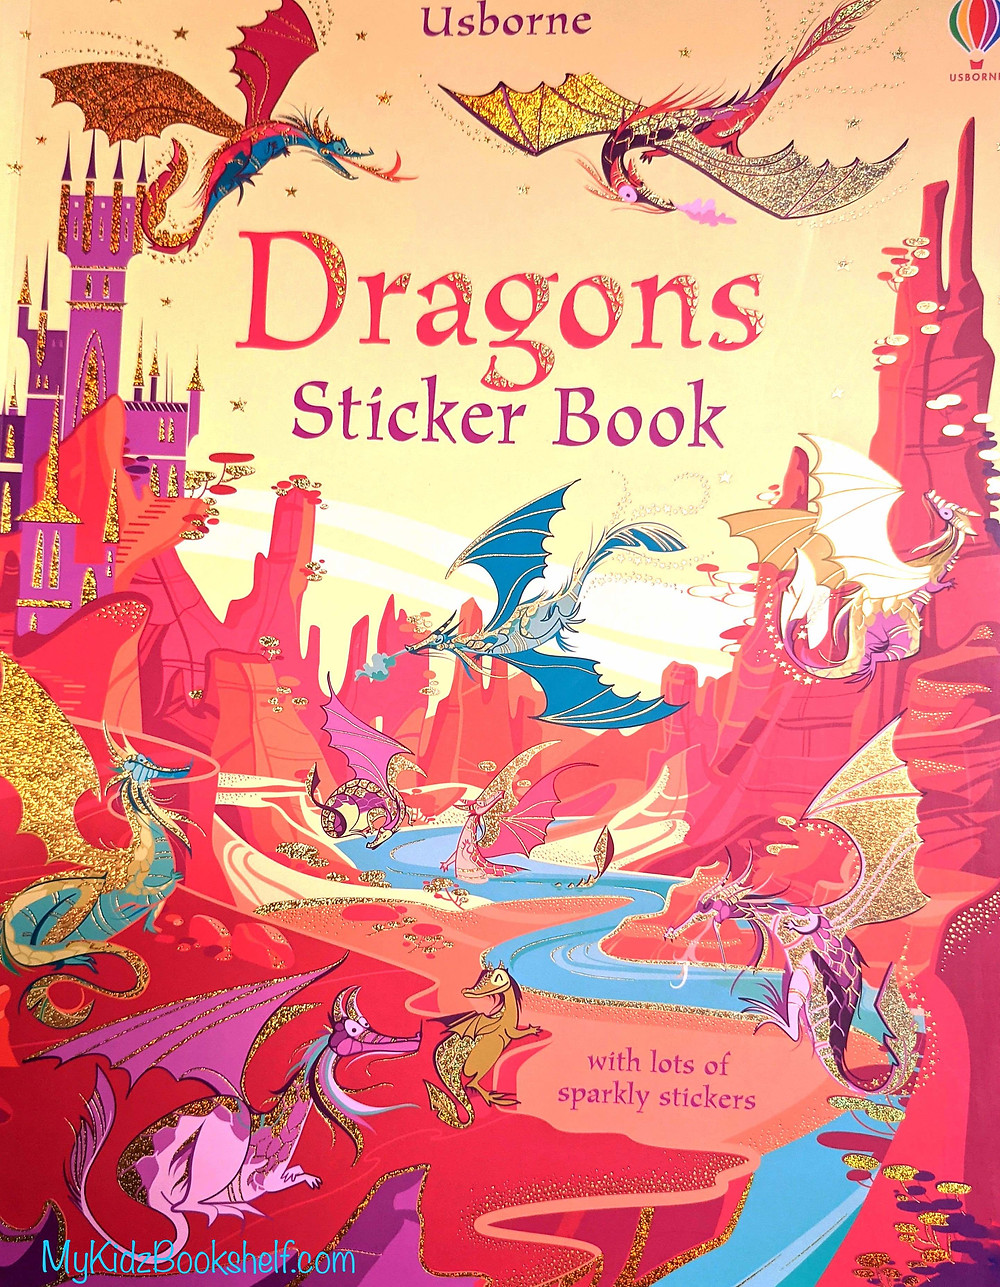 Usborne Dragons Sticker Book for kids with dragons flying around a castle